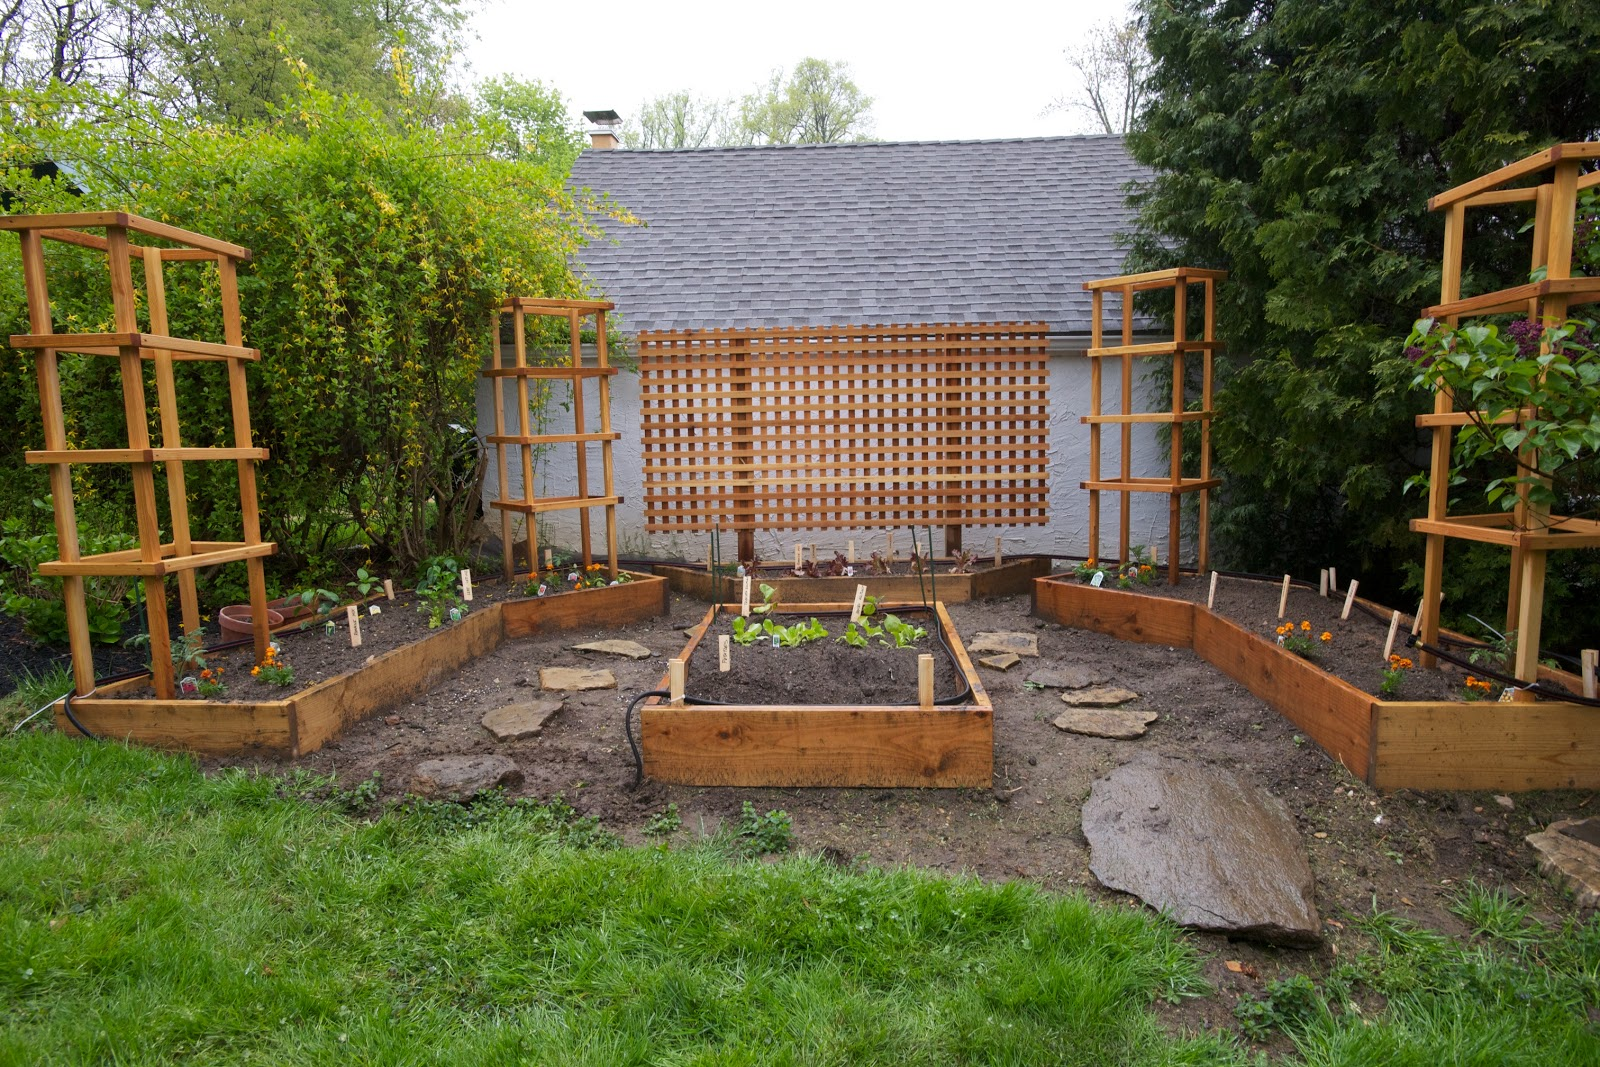 Back in the U.S.A.: Our Little Raised Bed Garden